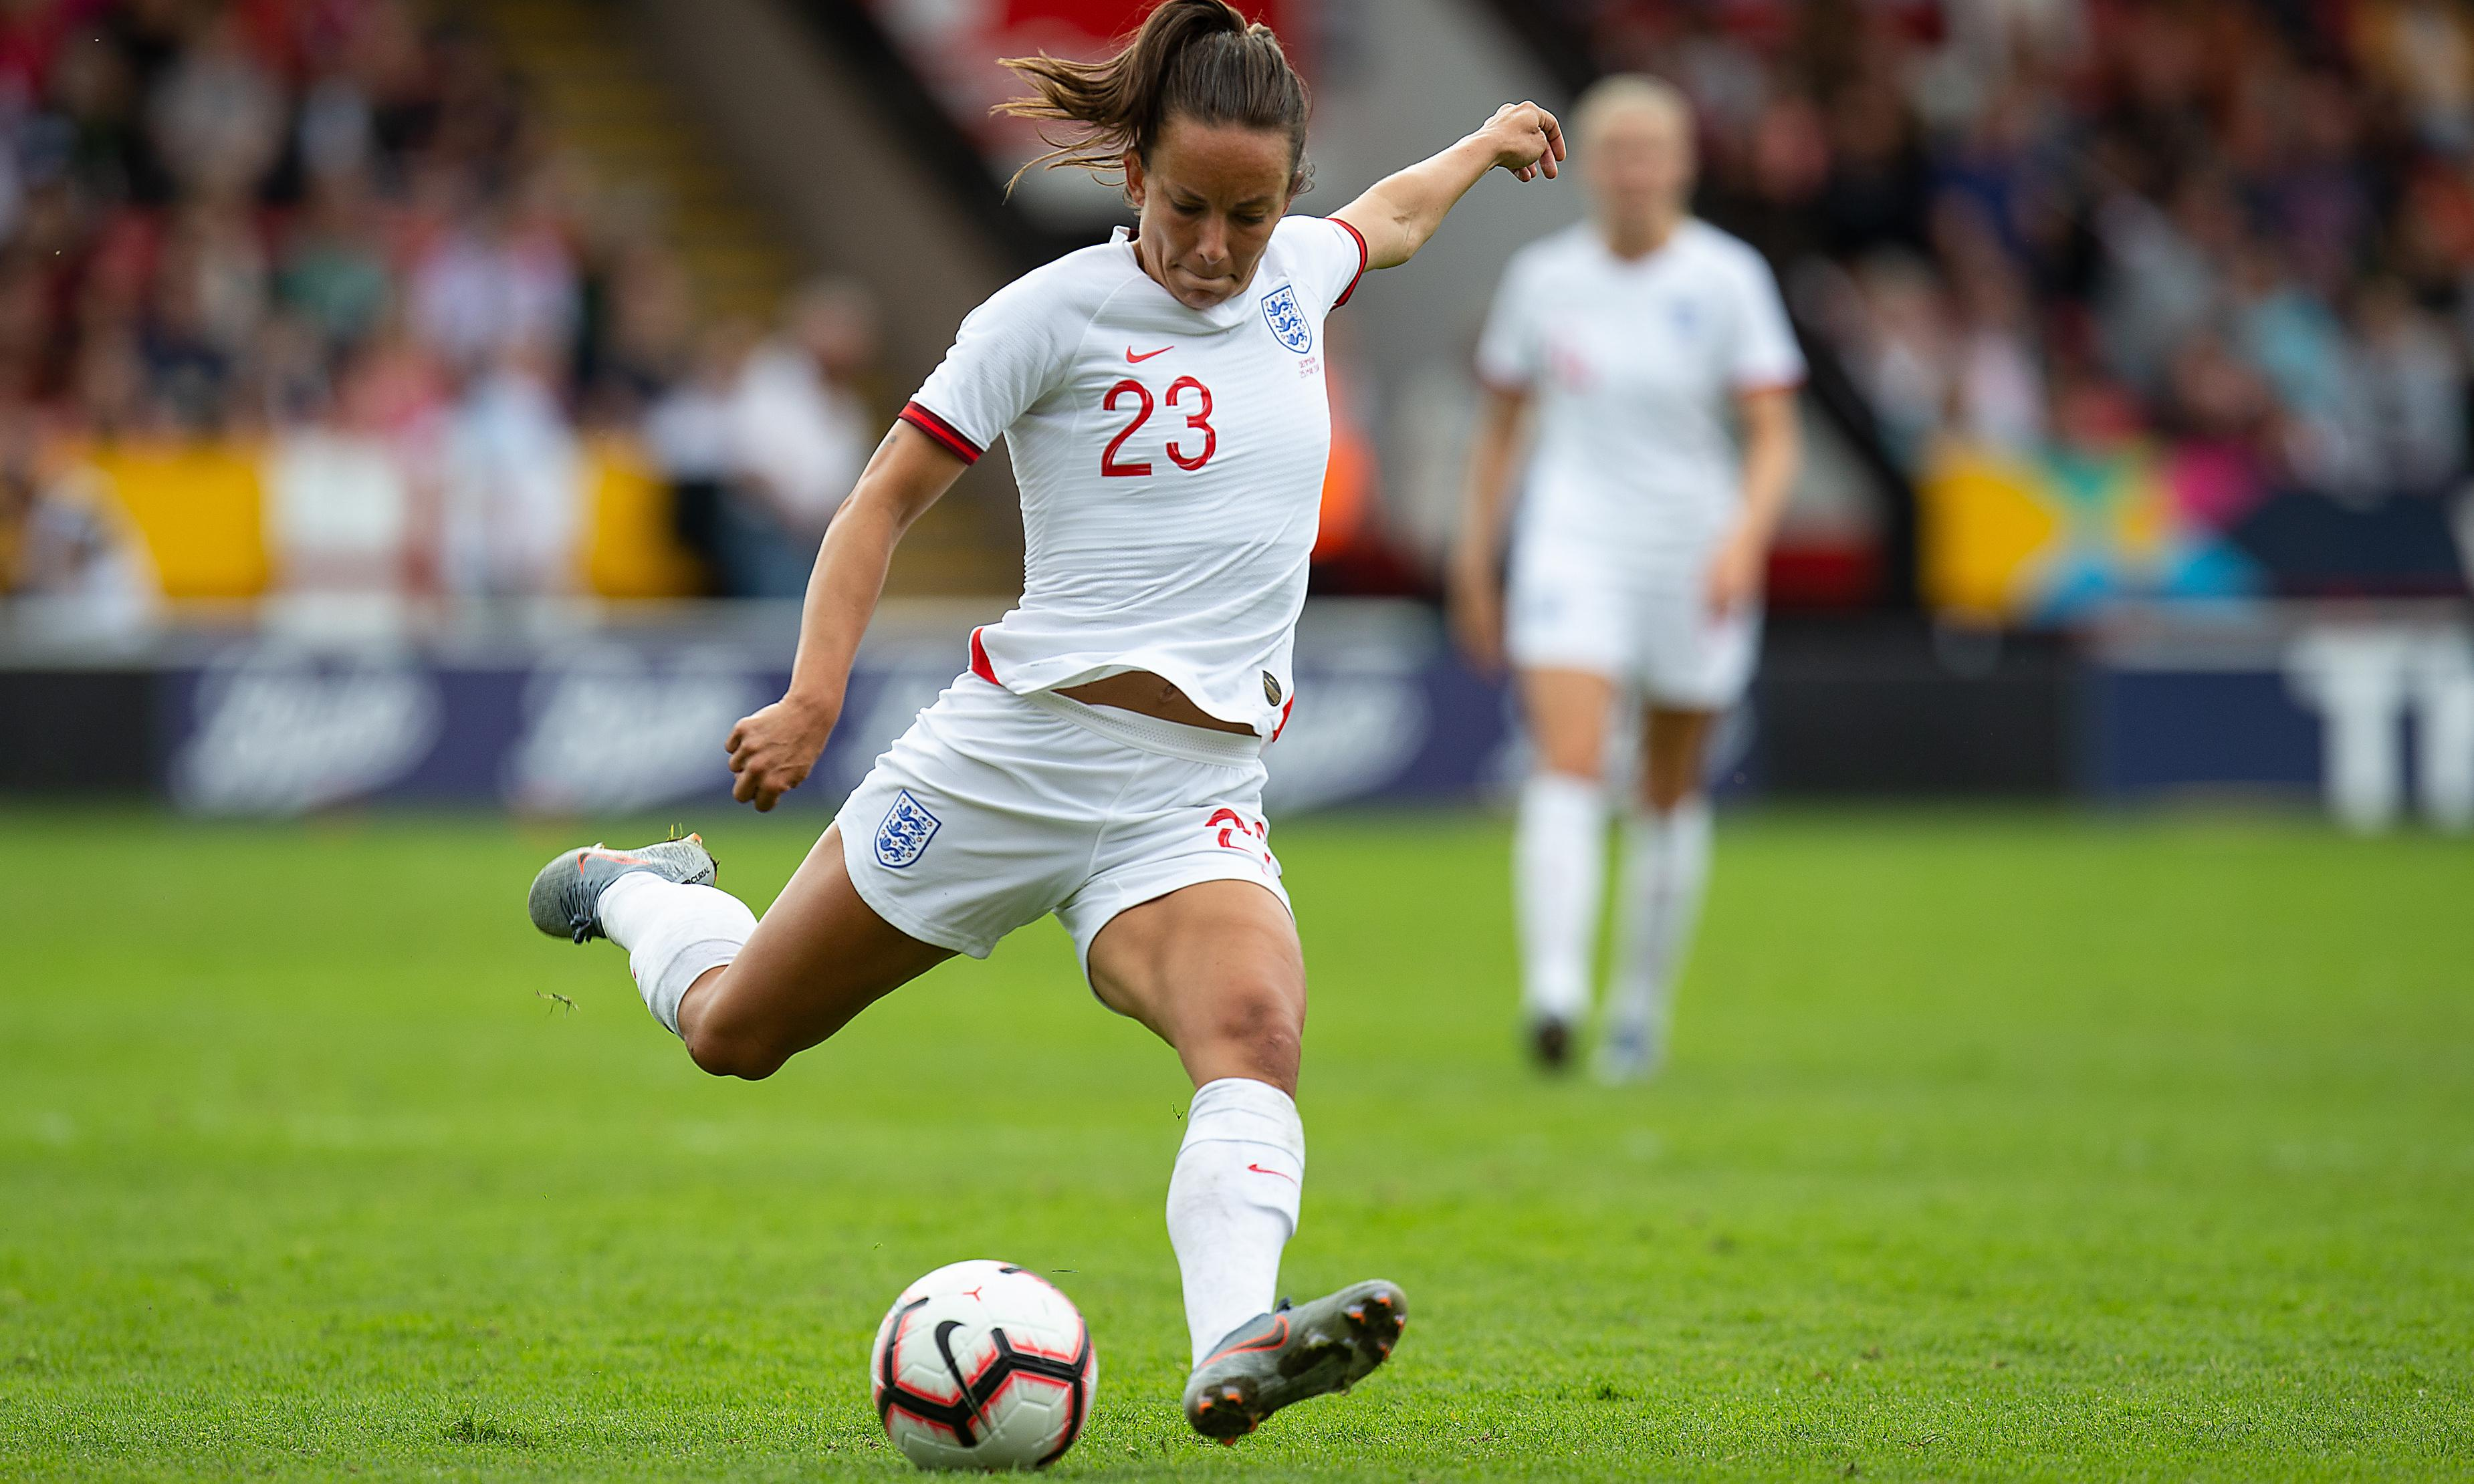 'I've had to be patient': Staniforth's tough road to Women's World Cup